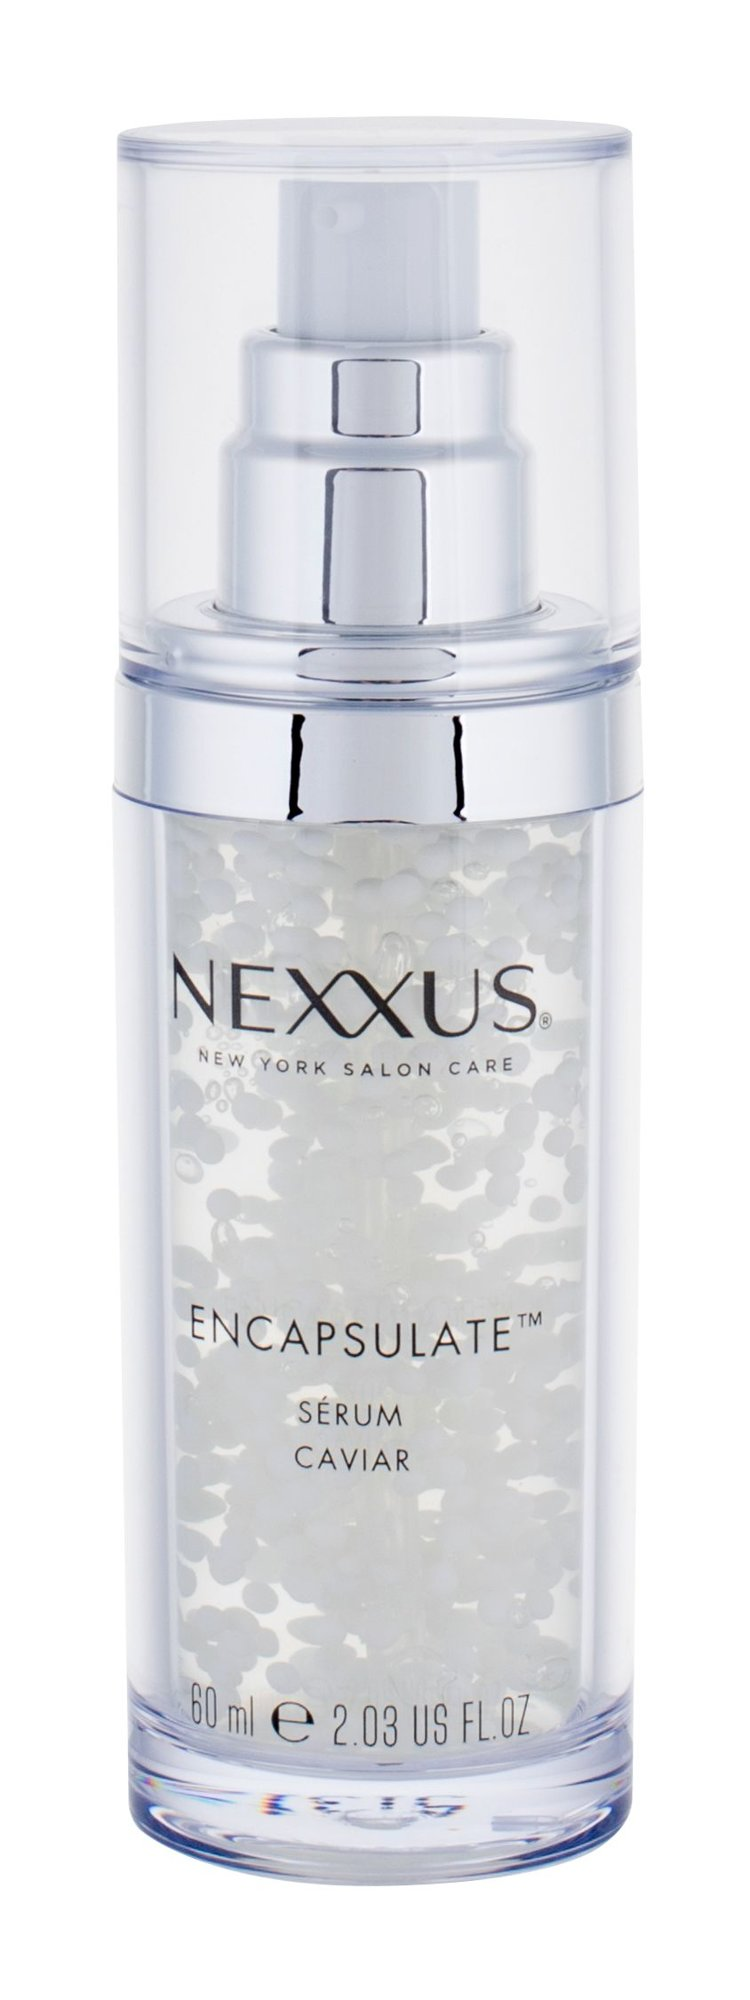 NEXXUS Humectress Encapsulate Caviar Serum Cosmetic 60ml